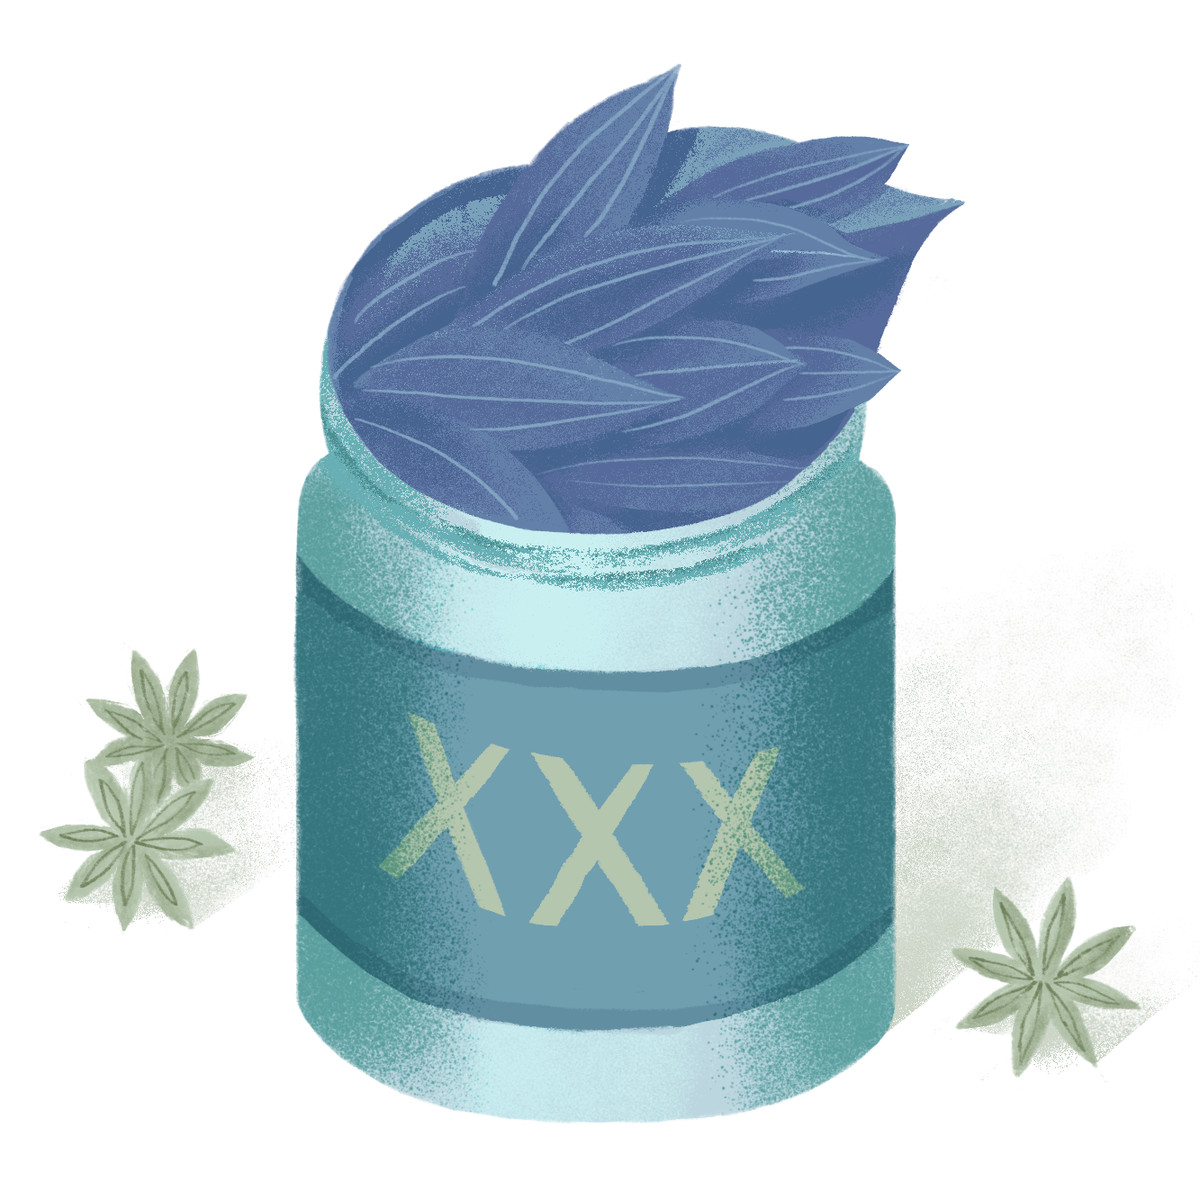 "An illustration showing a pill bottle marked with ""XXX"" with leaves or food items sticking out the top."